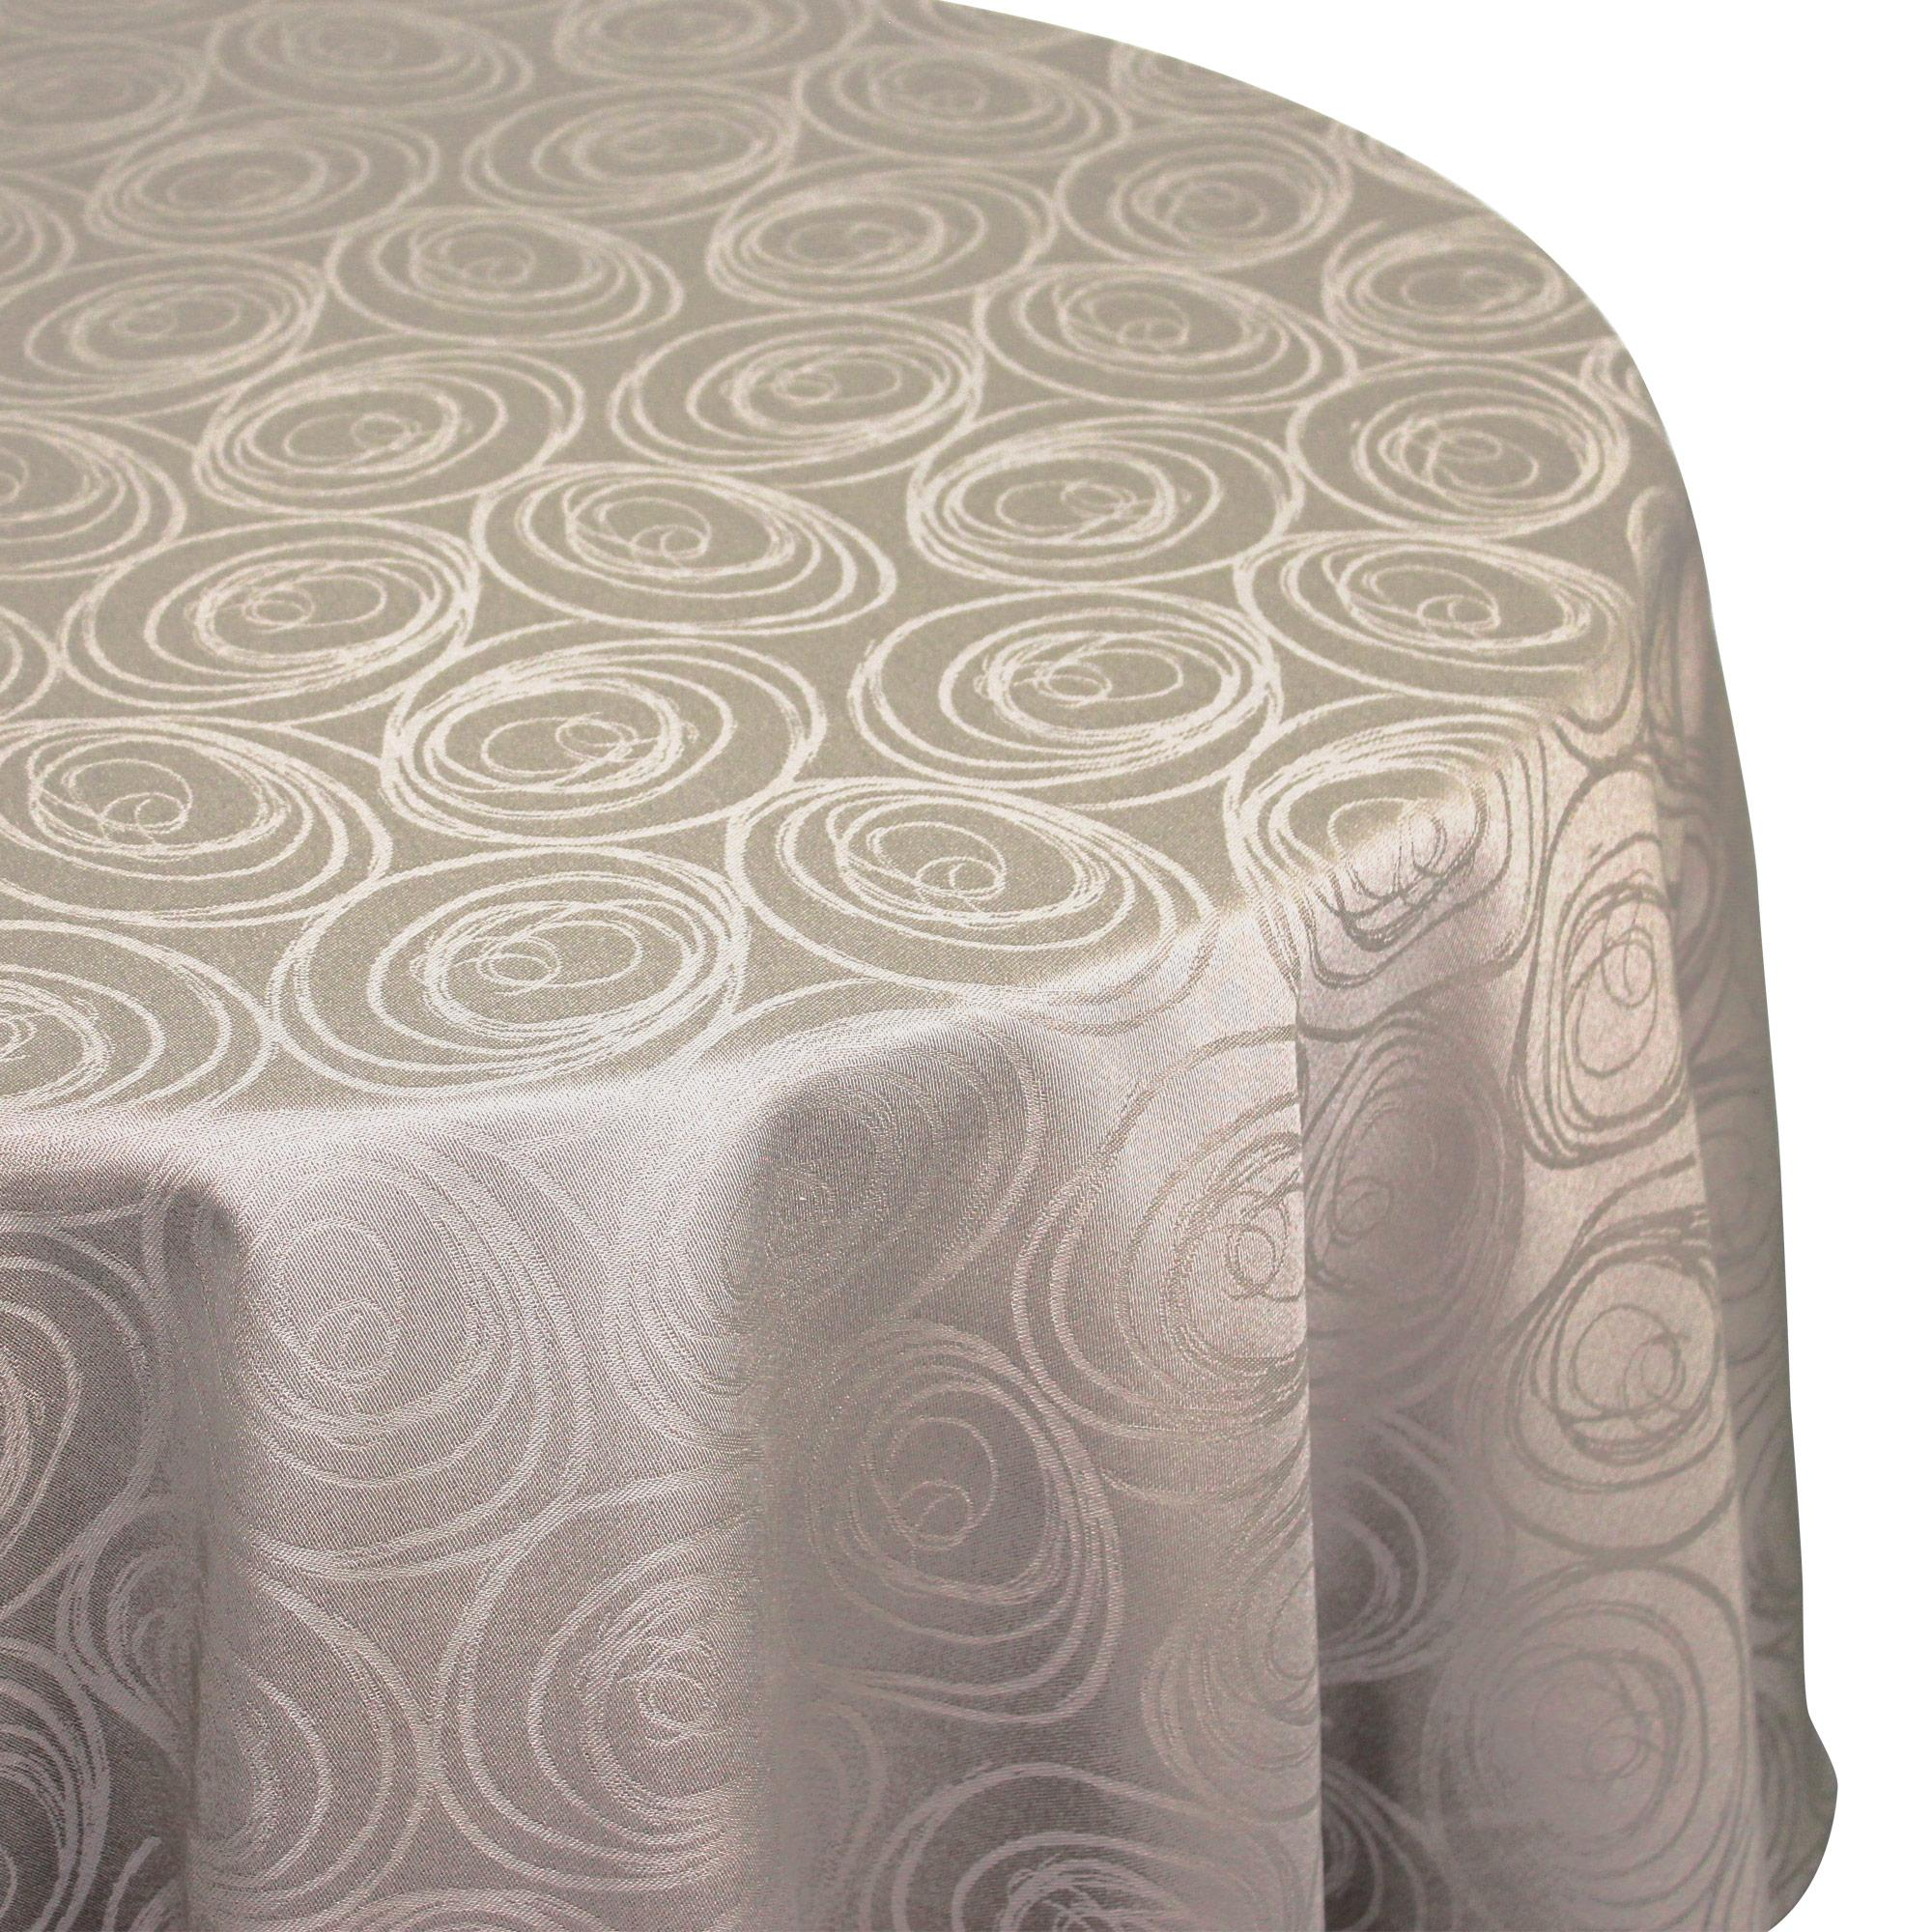 nappe ovale 180x240 cm jacquard 100 coton spirale taupe linnea linge de maison et. Black Bedroom Furniture Sets. Home Design Ideas